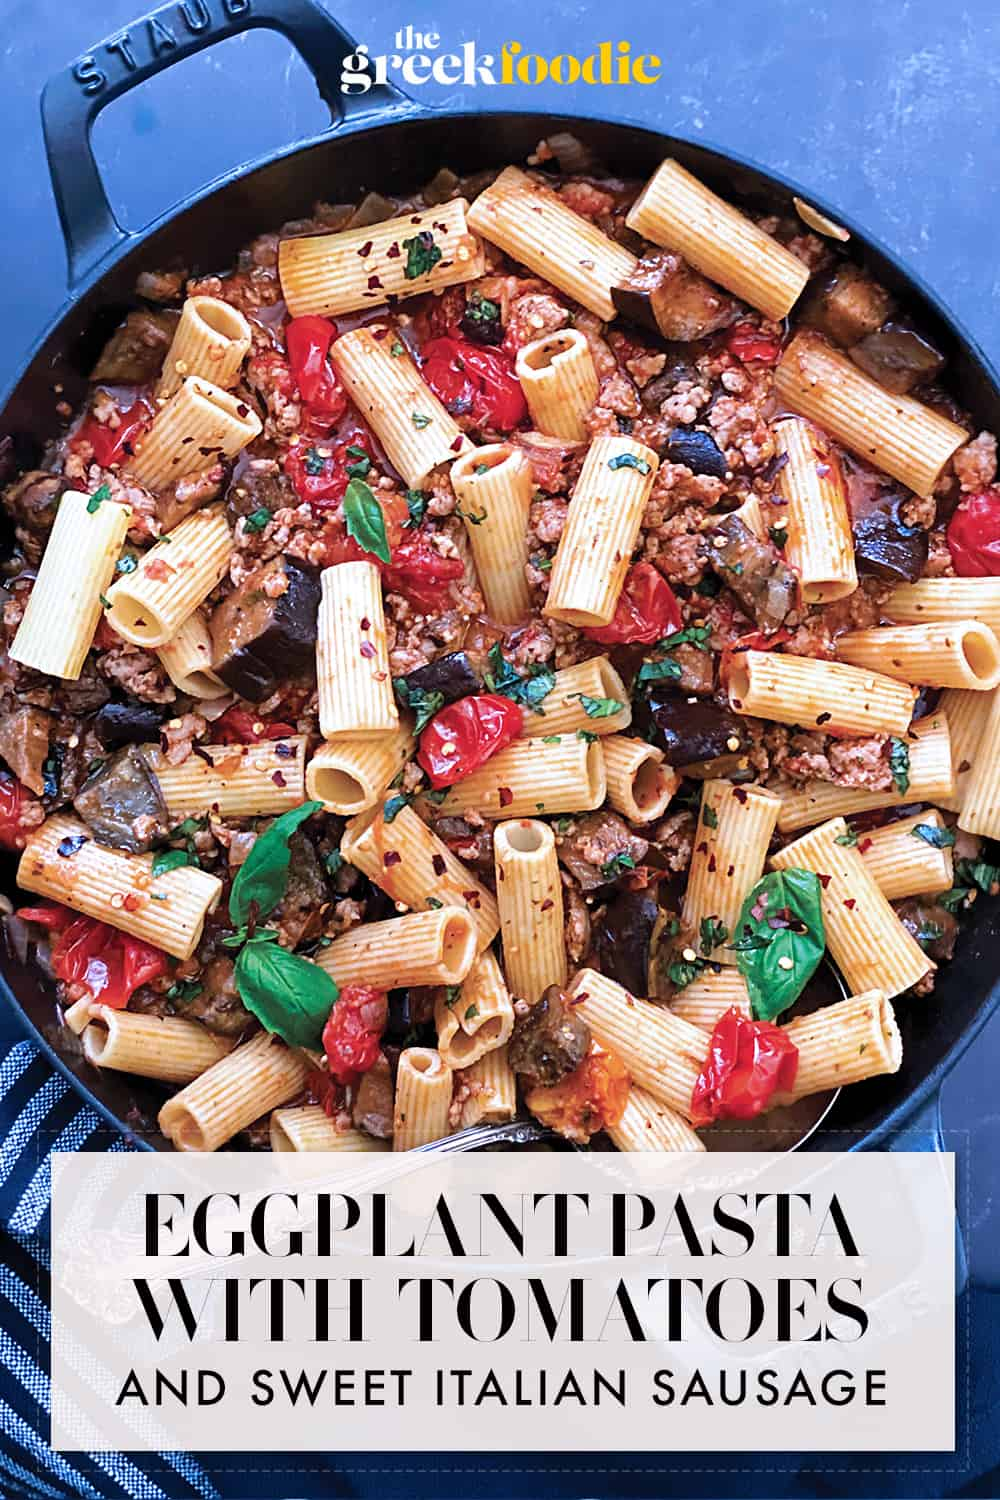 Eggplant pasta with Tomatoes and Sweet Italian Sausage